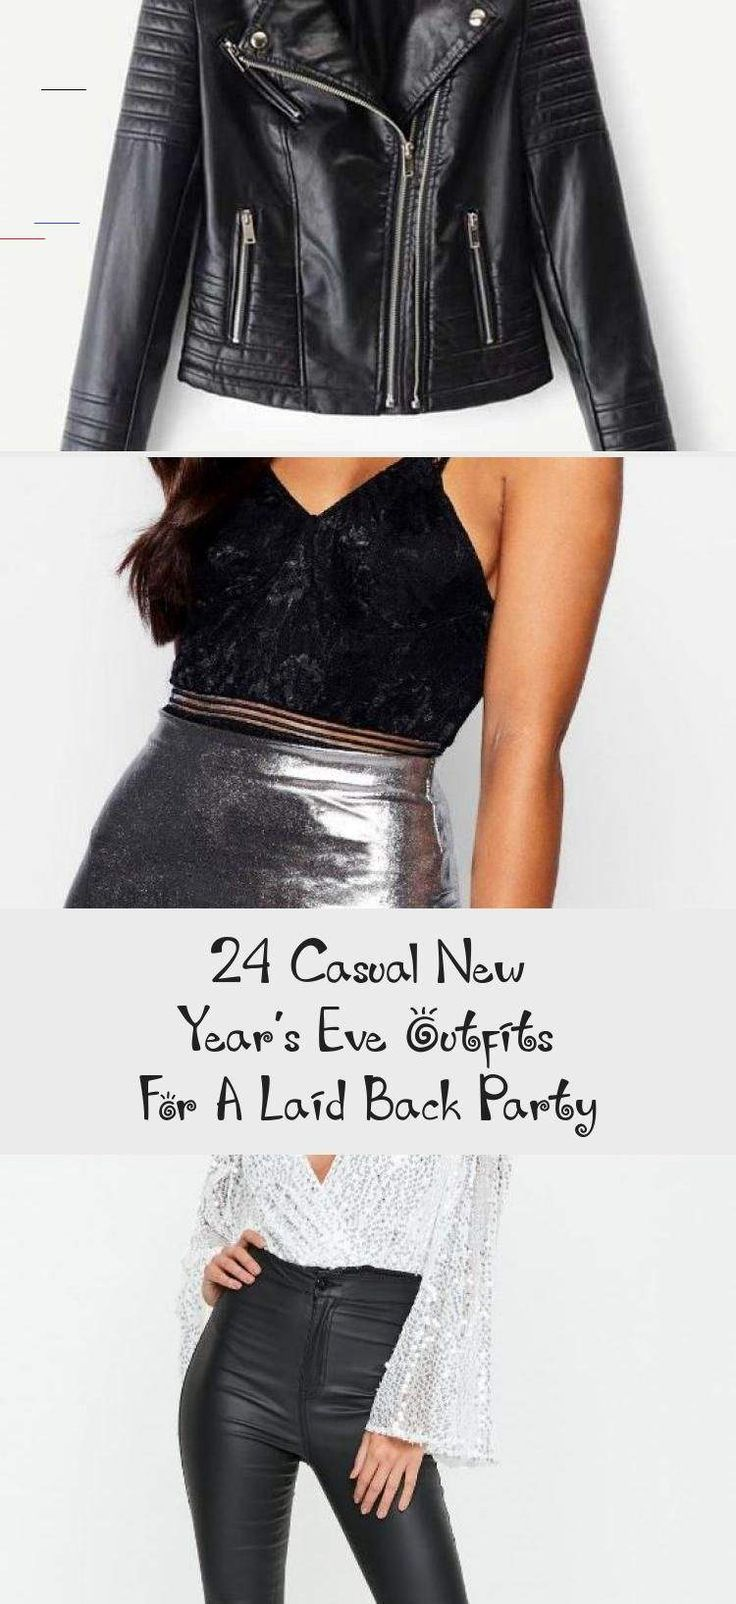 newyearseveoutfits in 2020 New years eve outfit casual